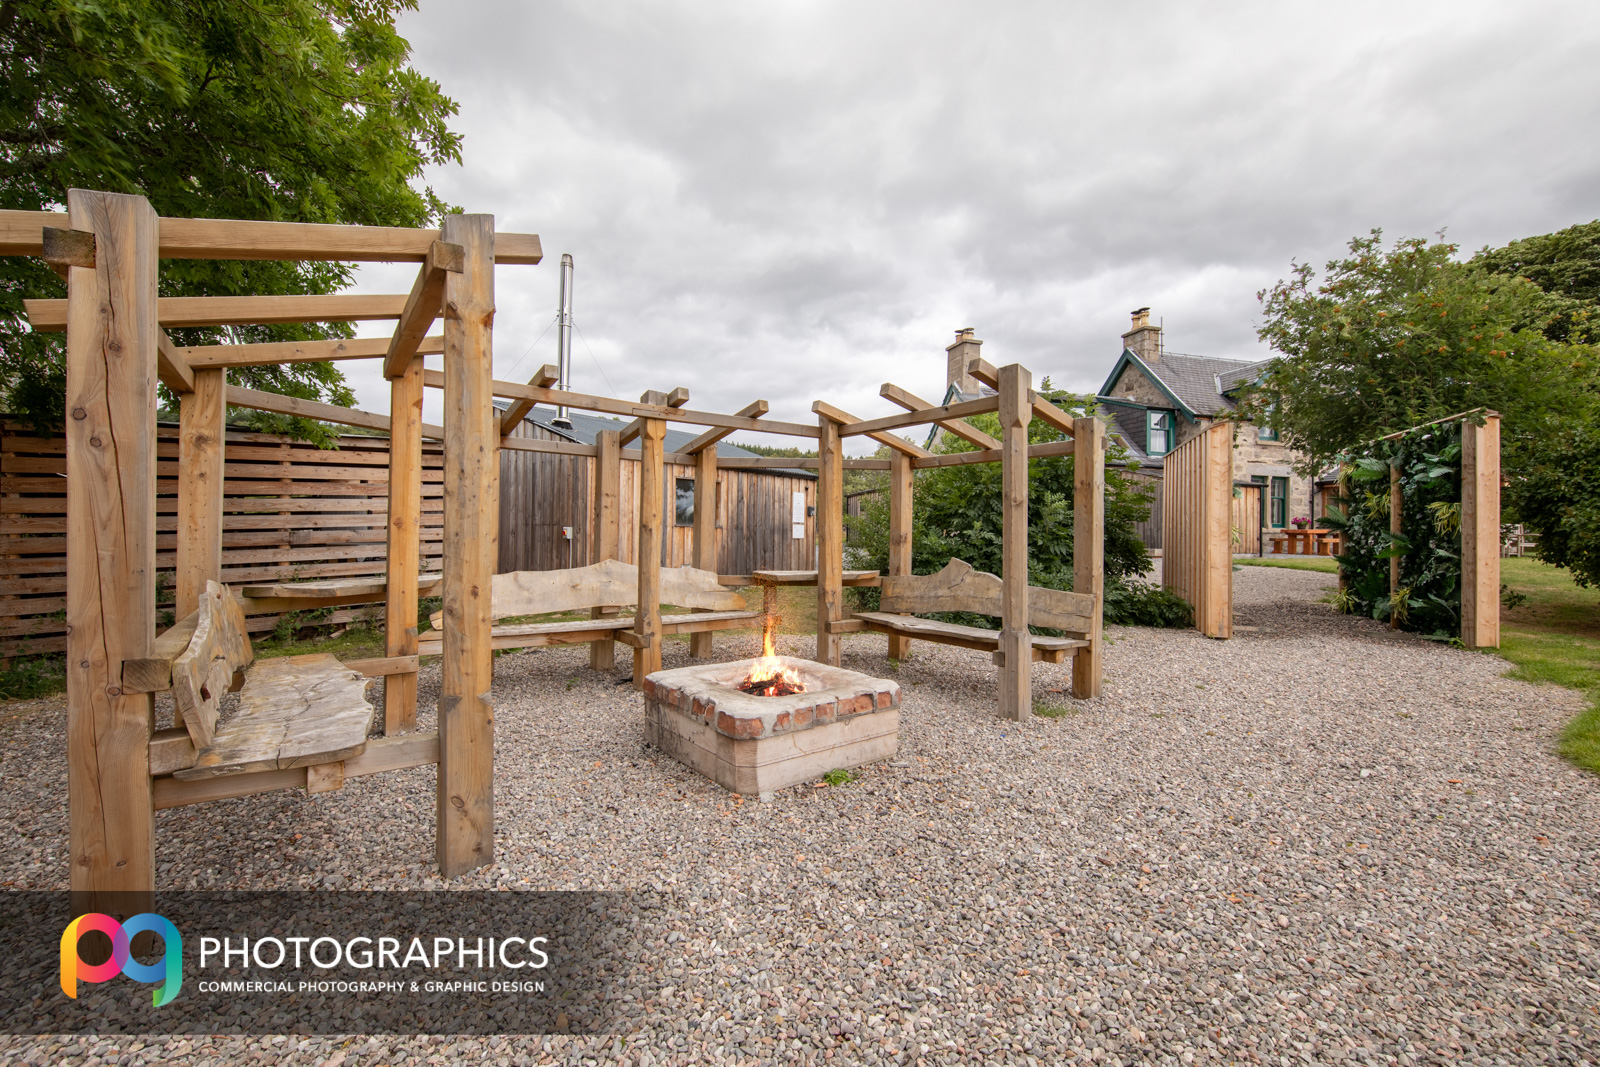 real-estate-property-photography-glasgow-edinburgh-scotland-10.jpg